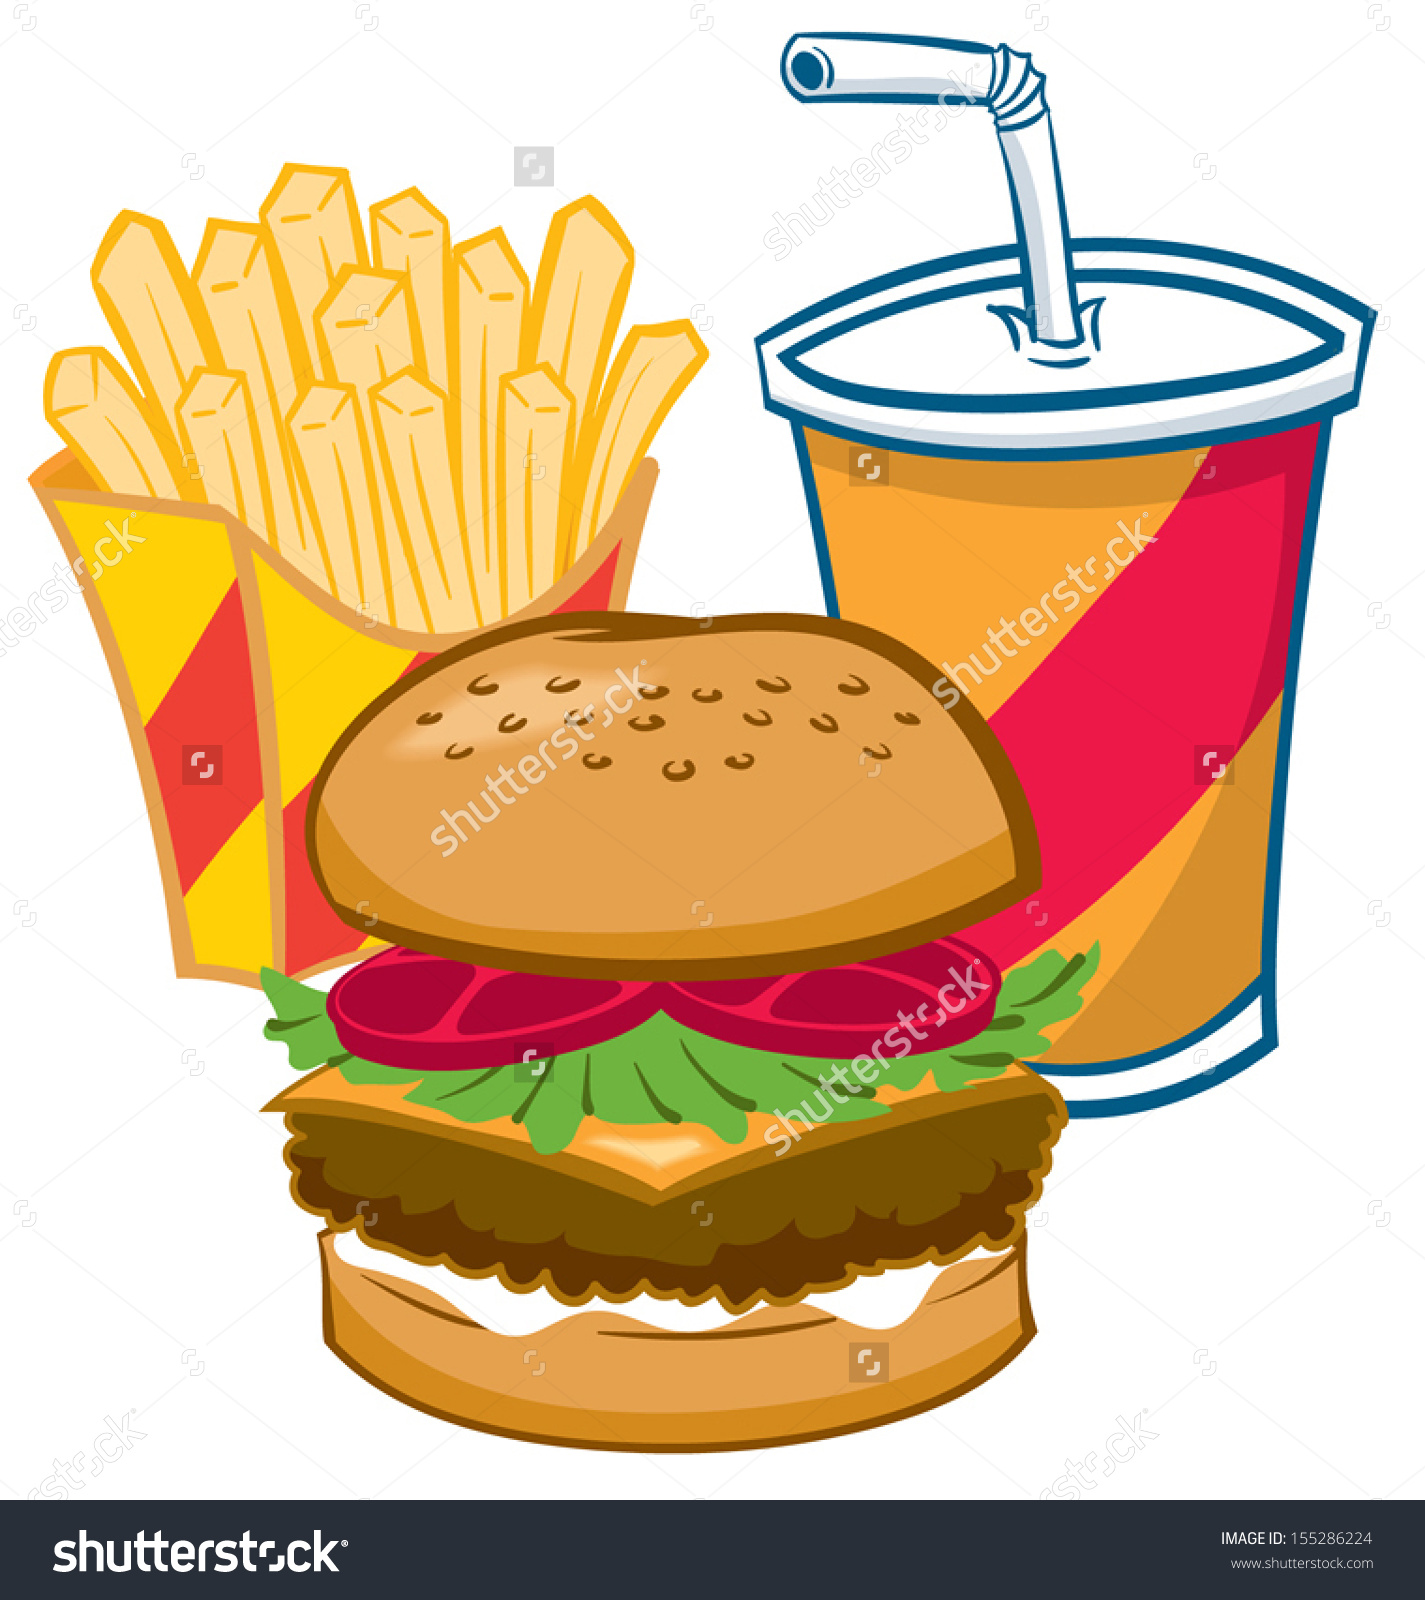 Clipart Burger And Fries.